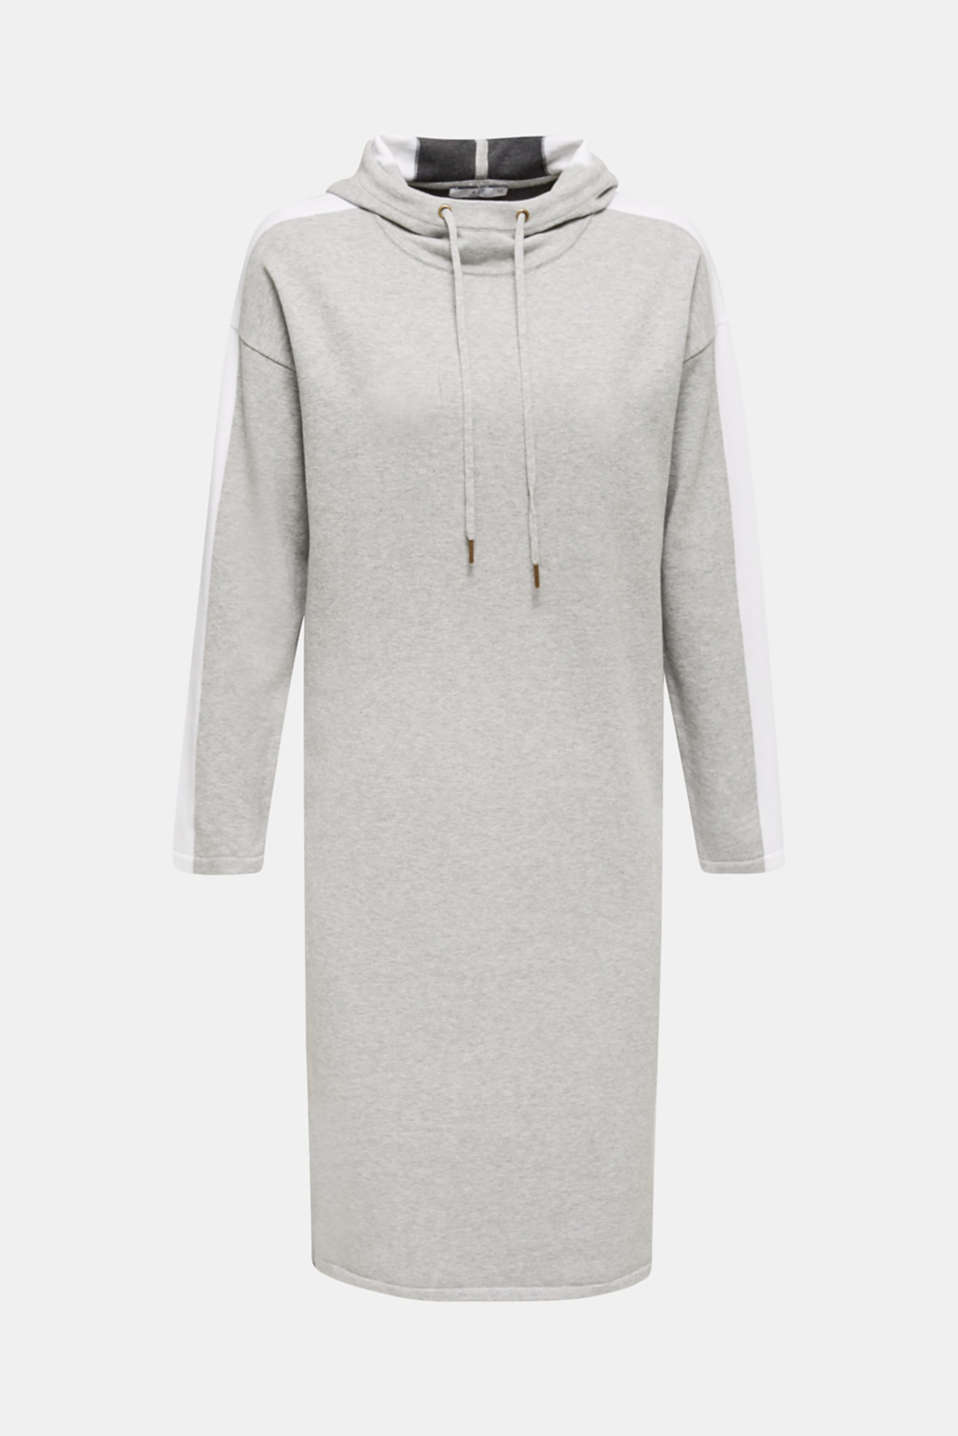 Dresses flat knitted, LIGHT GREY 4, detail image number 6